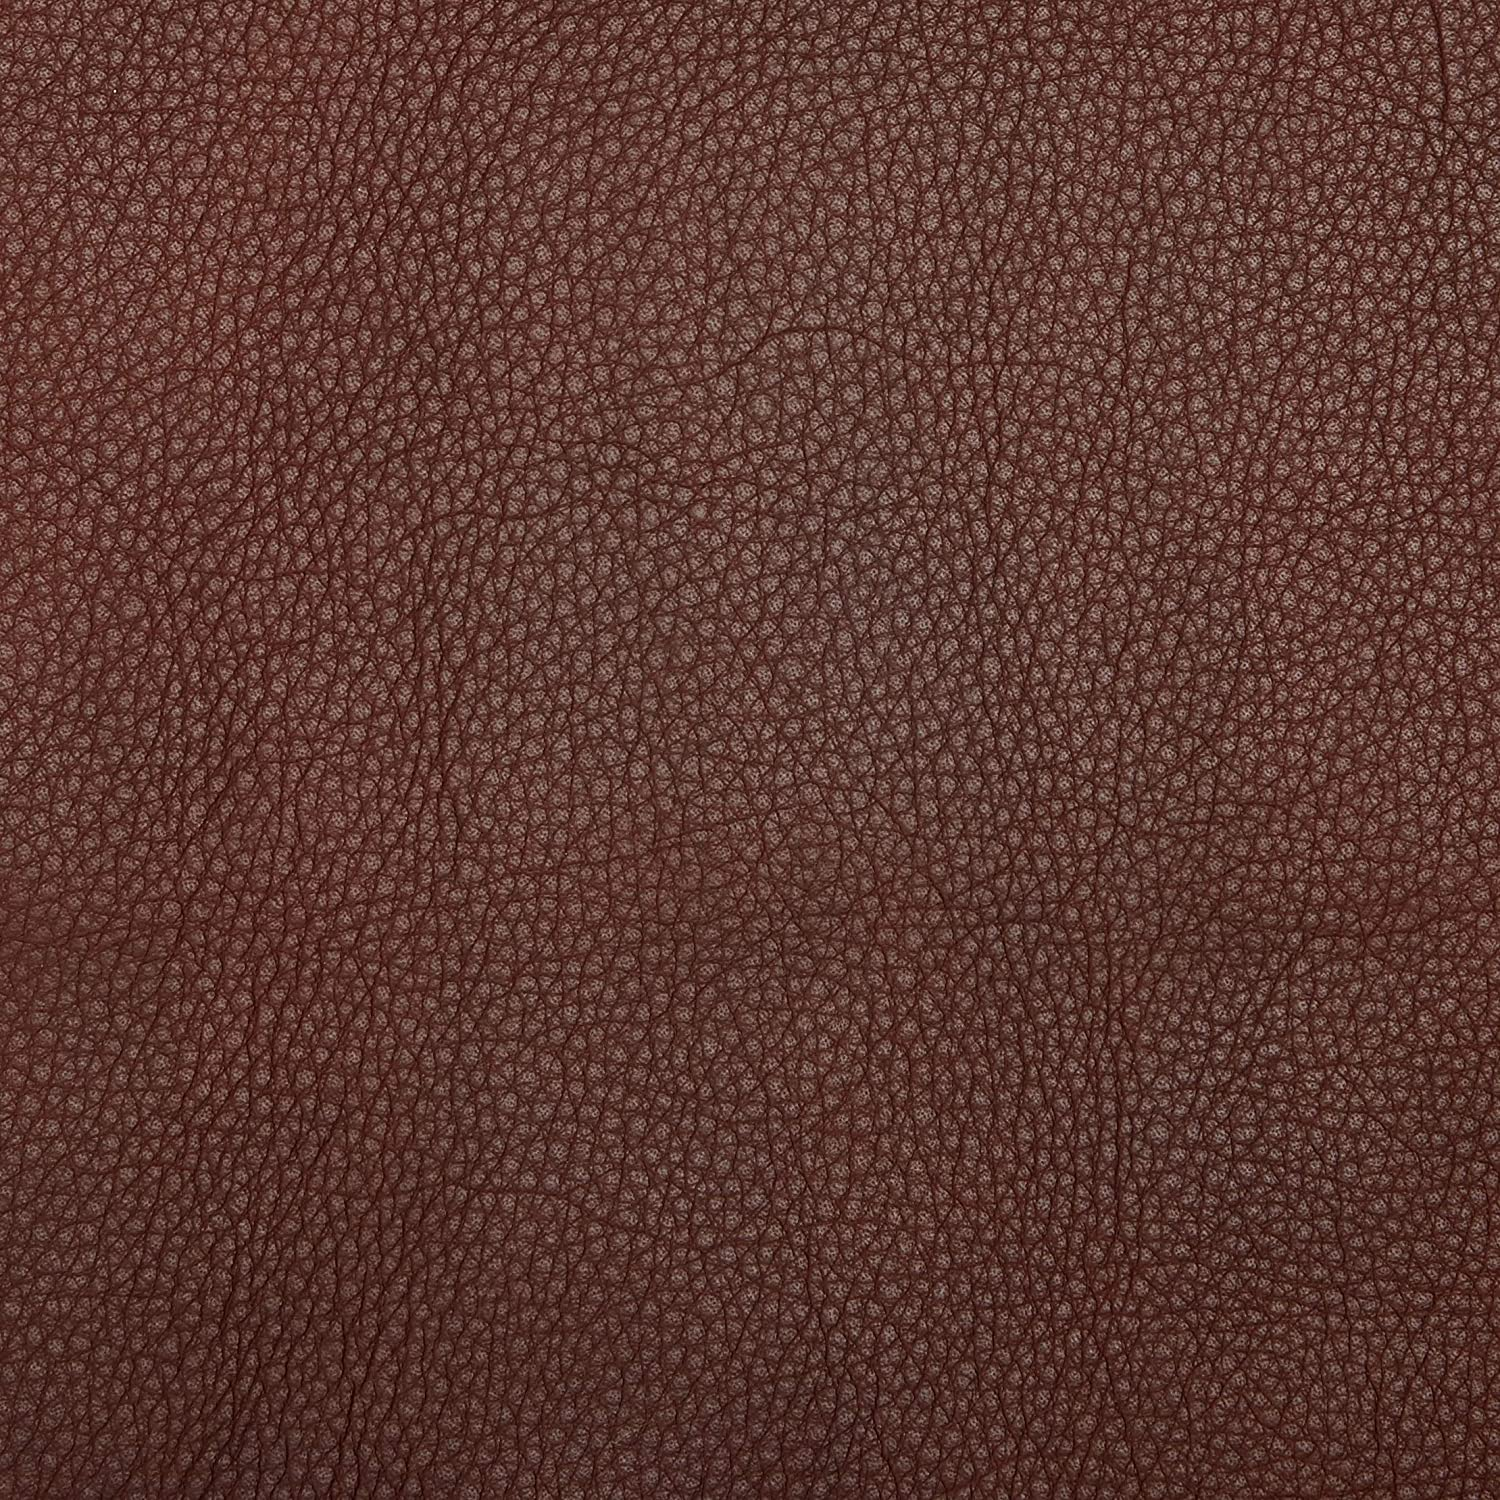 12 X 24 Inches 2 Square Foot, Antique Brown REED Leather HIDES Cow Skins Various Colors /& Sizes